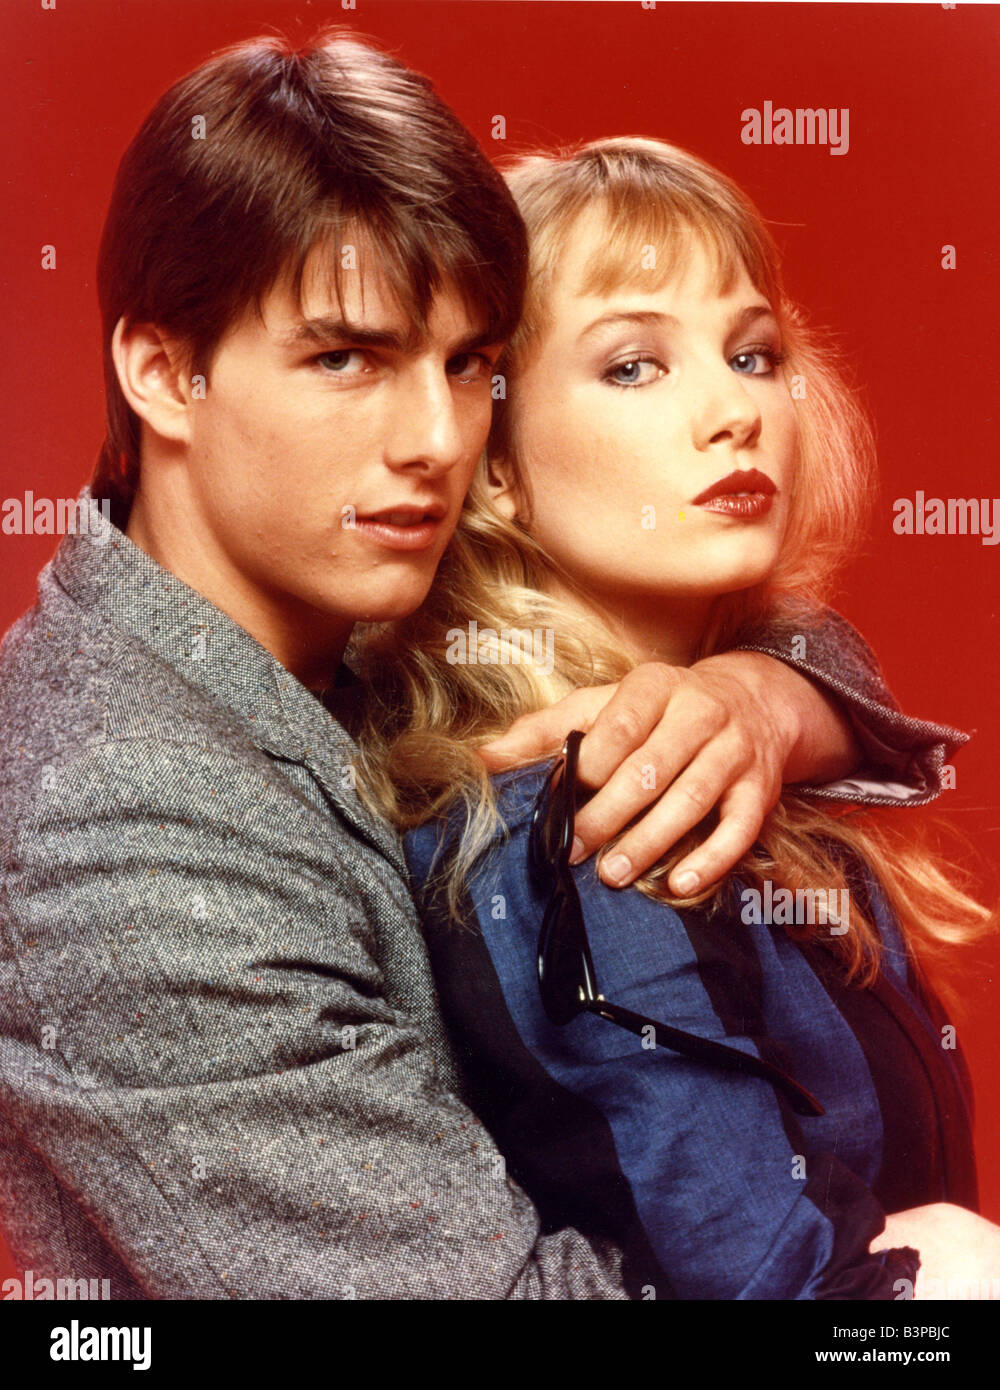 Gif risky business tom cruise 80s comedies animated gif on gifer.